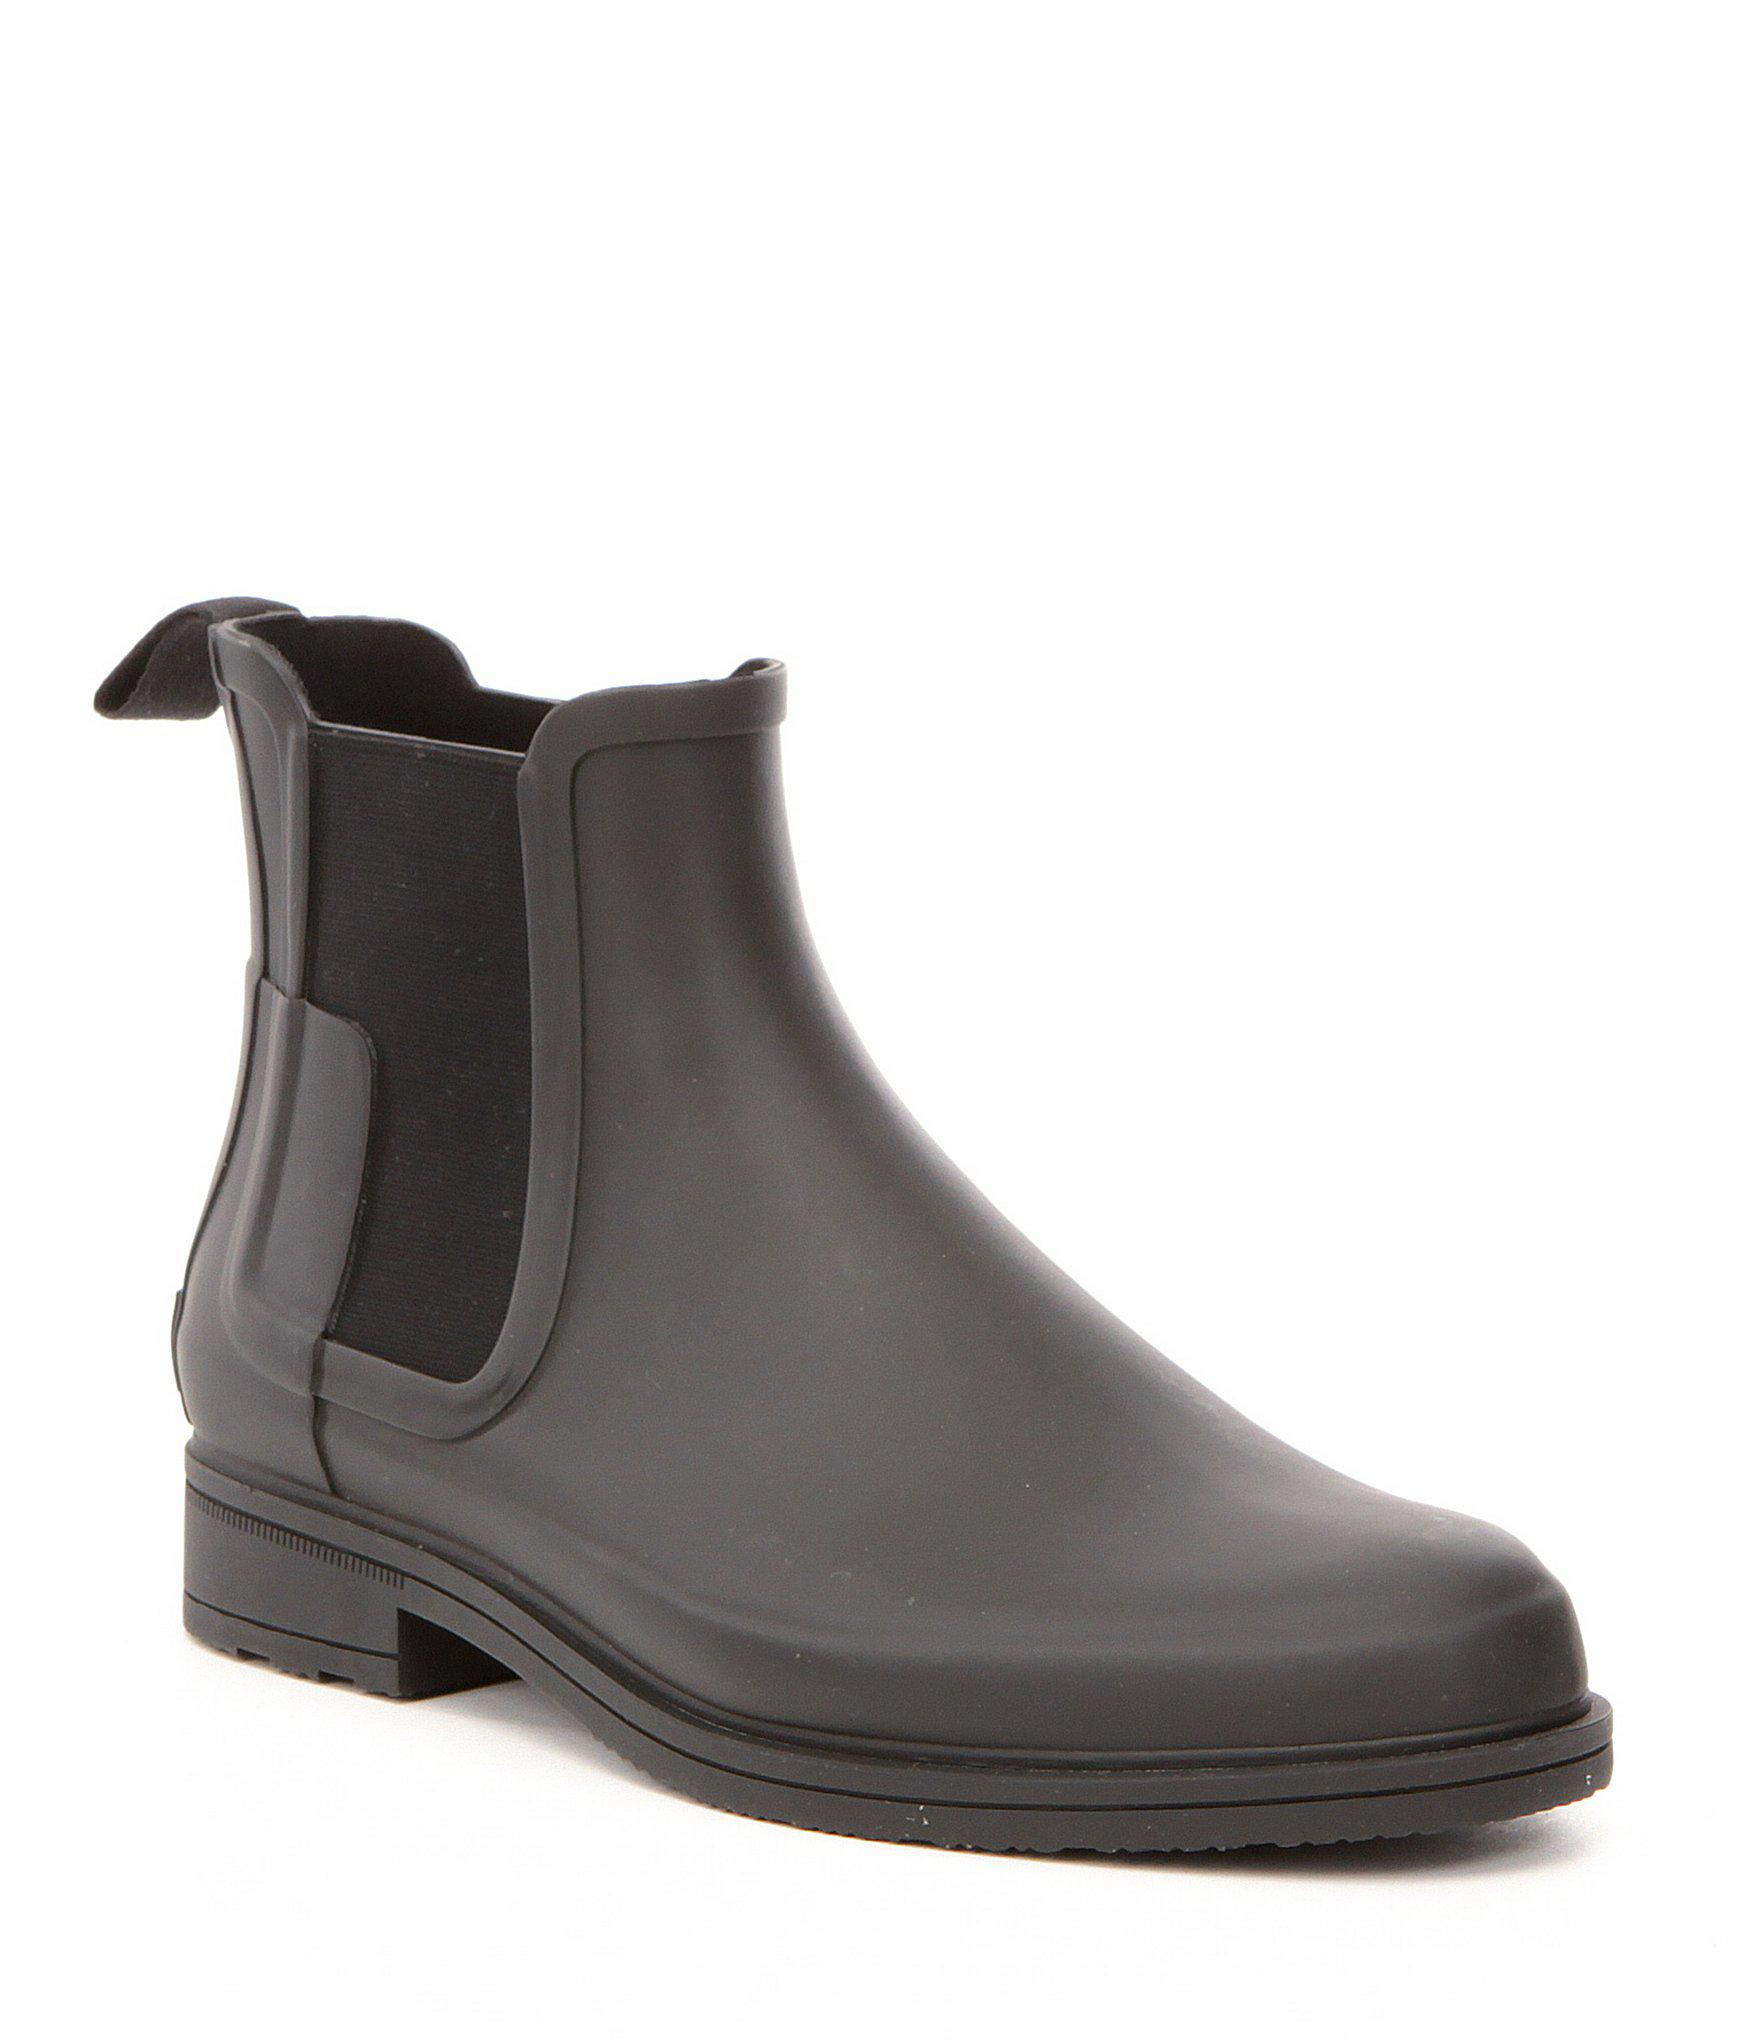 1821351b51a2 Lyst - HUNTER Men s Original Waterproof Refined Chelsea Boots in ...